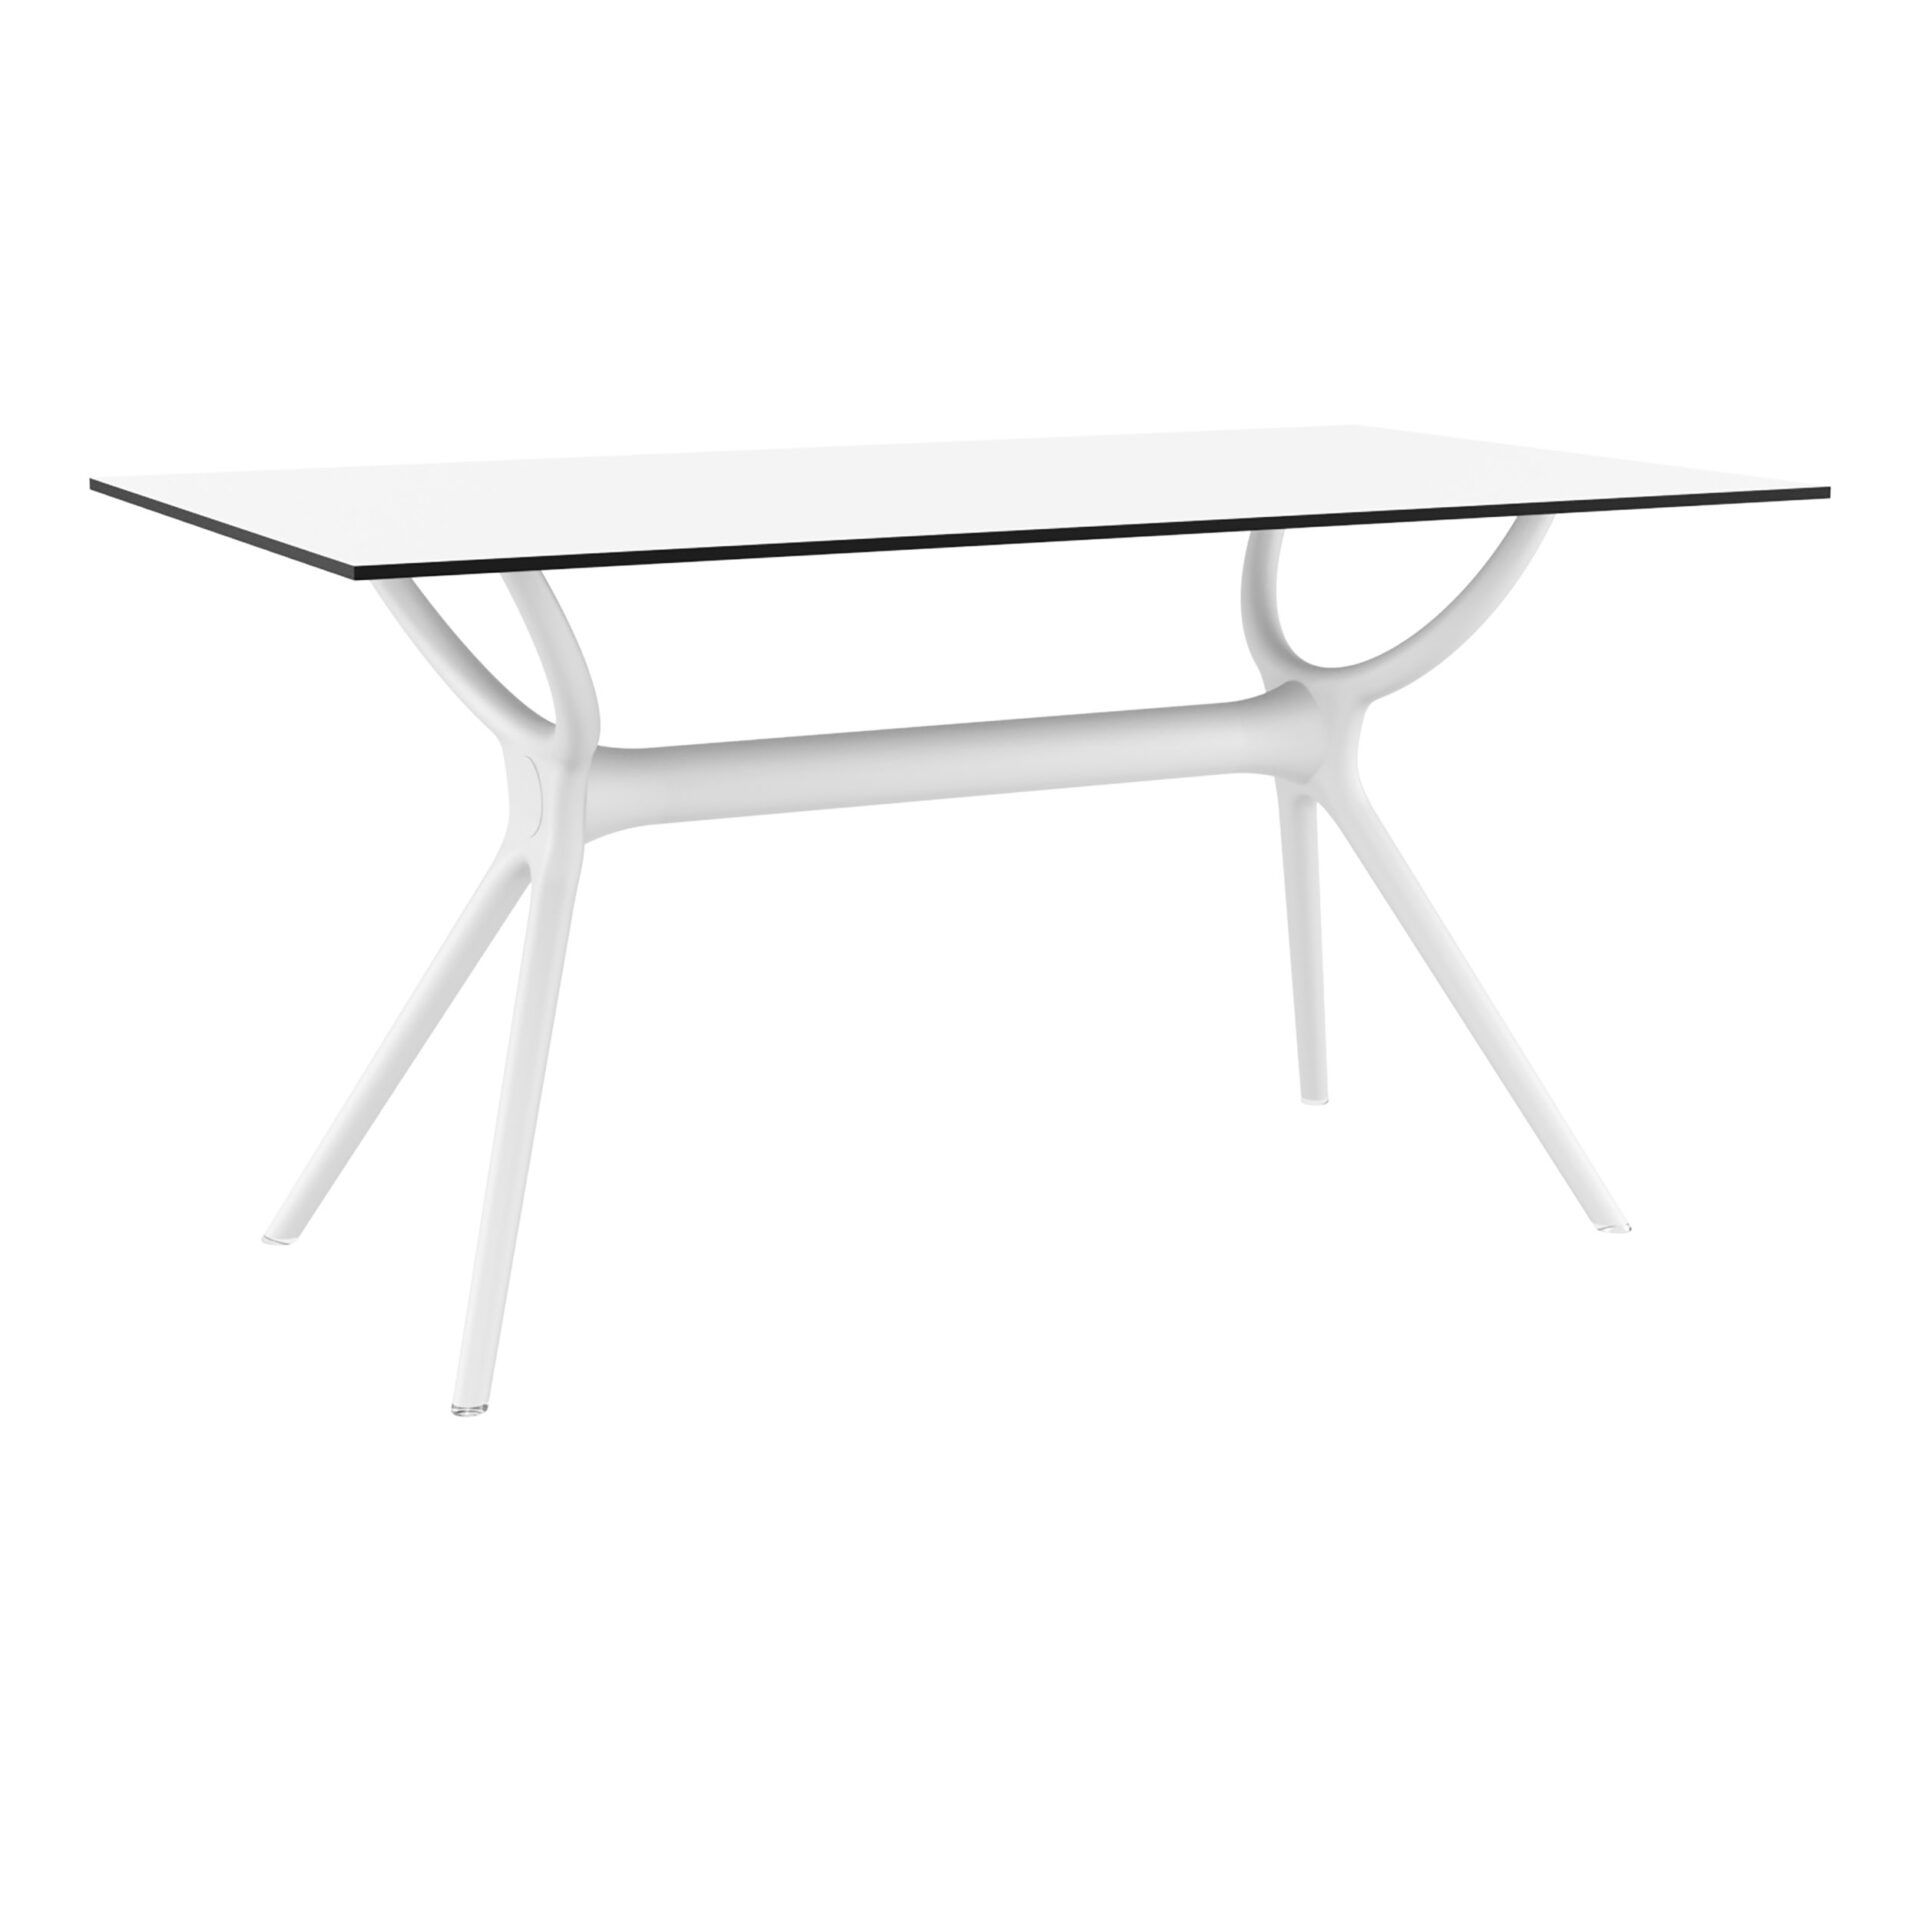 polypropylene dining air table 140 white front side